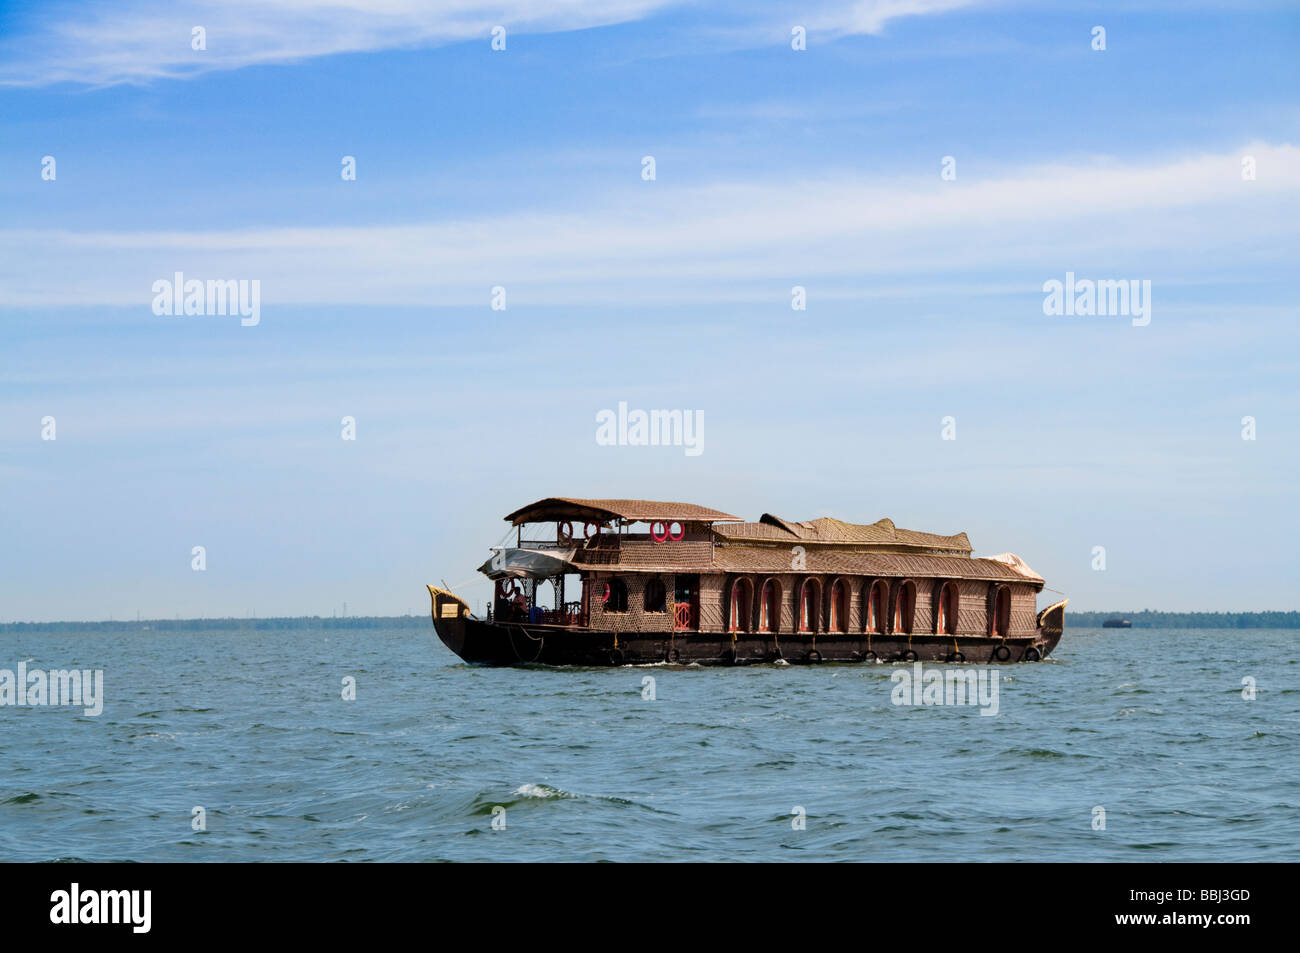 House boat in backwater, cochin - Stock Image